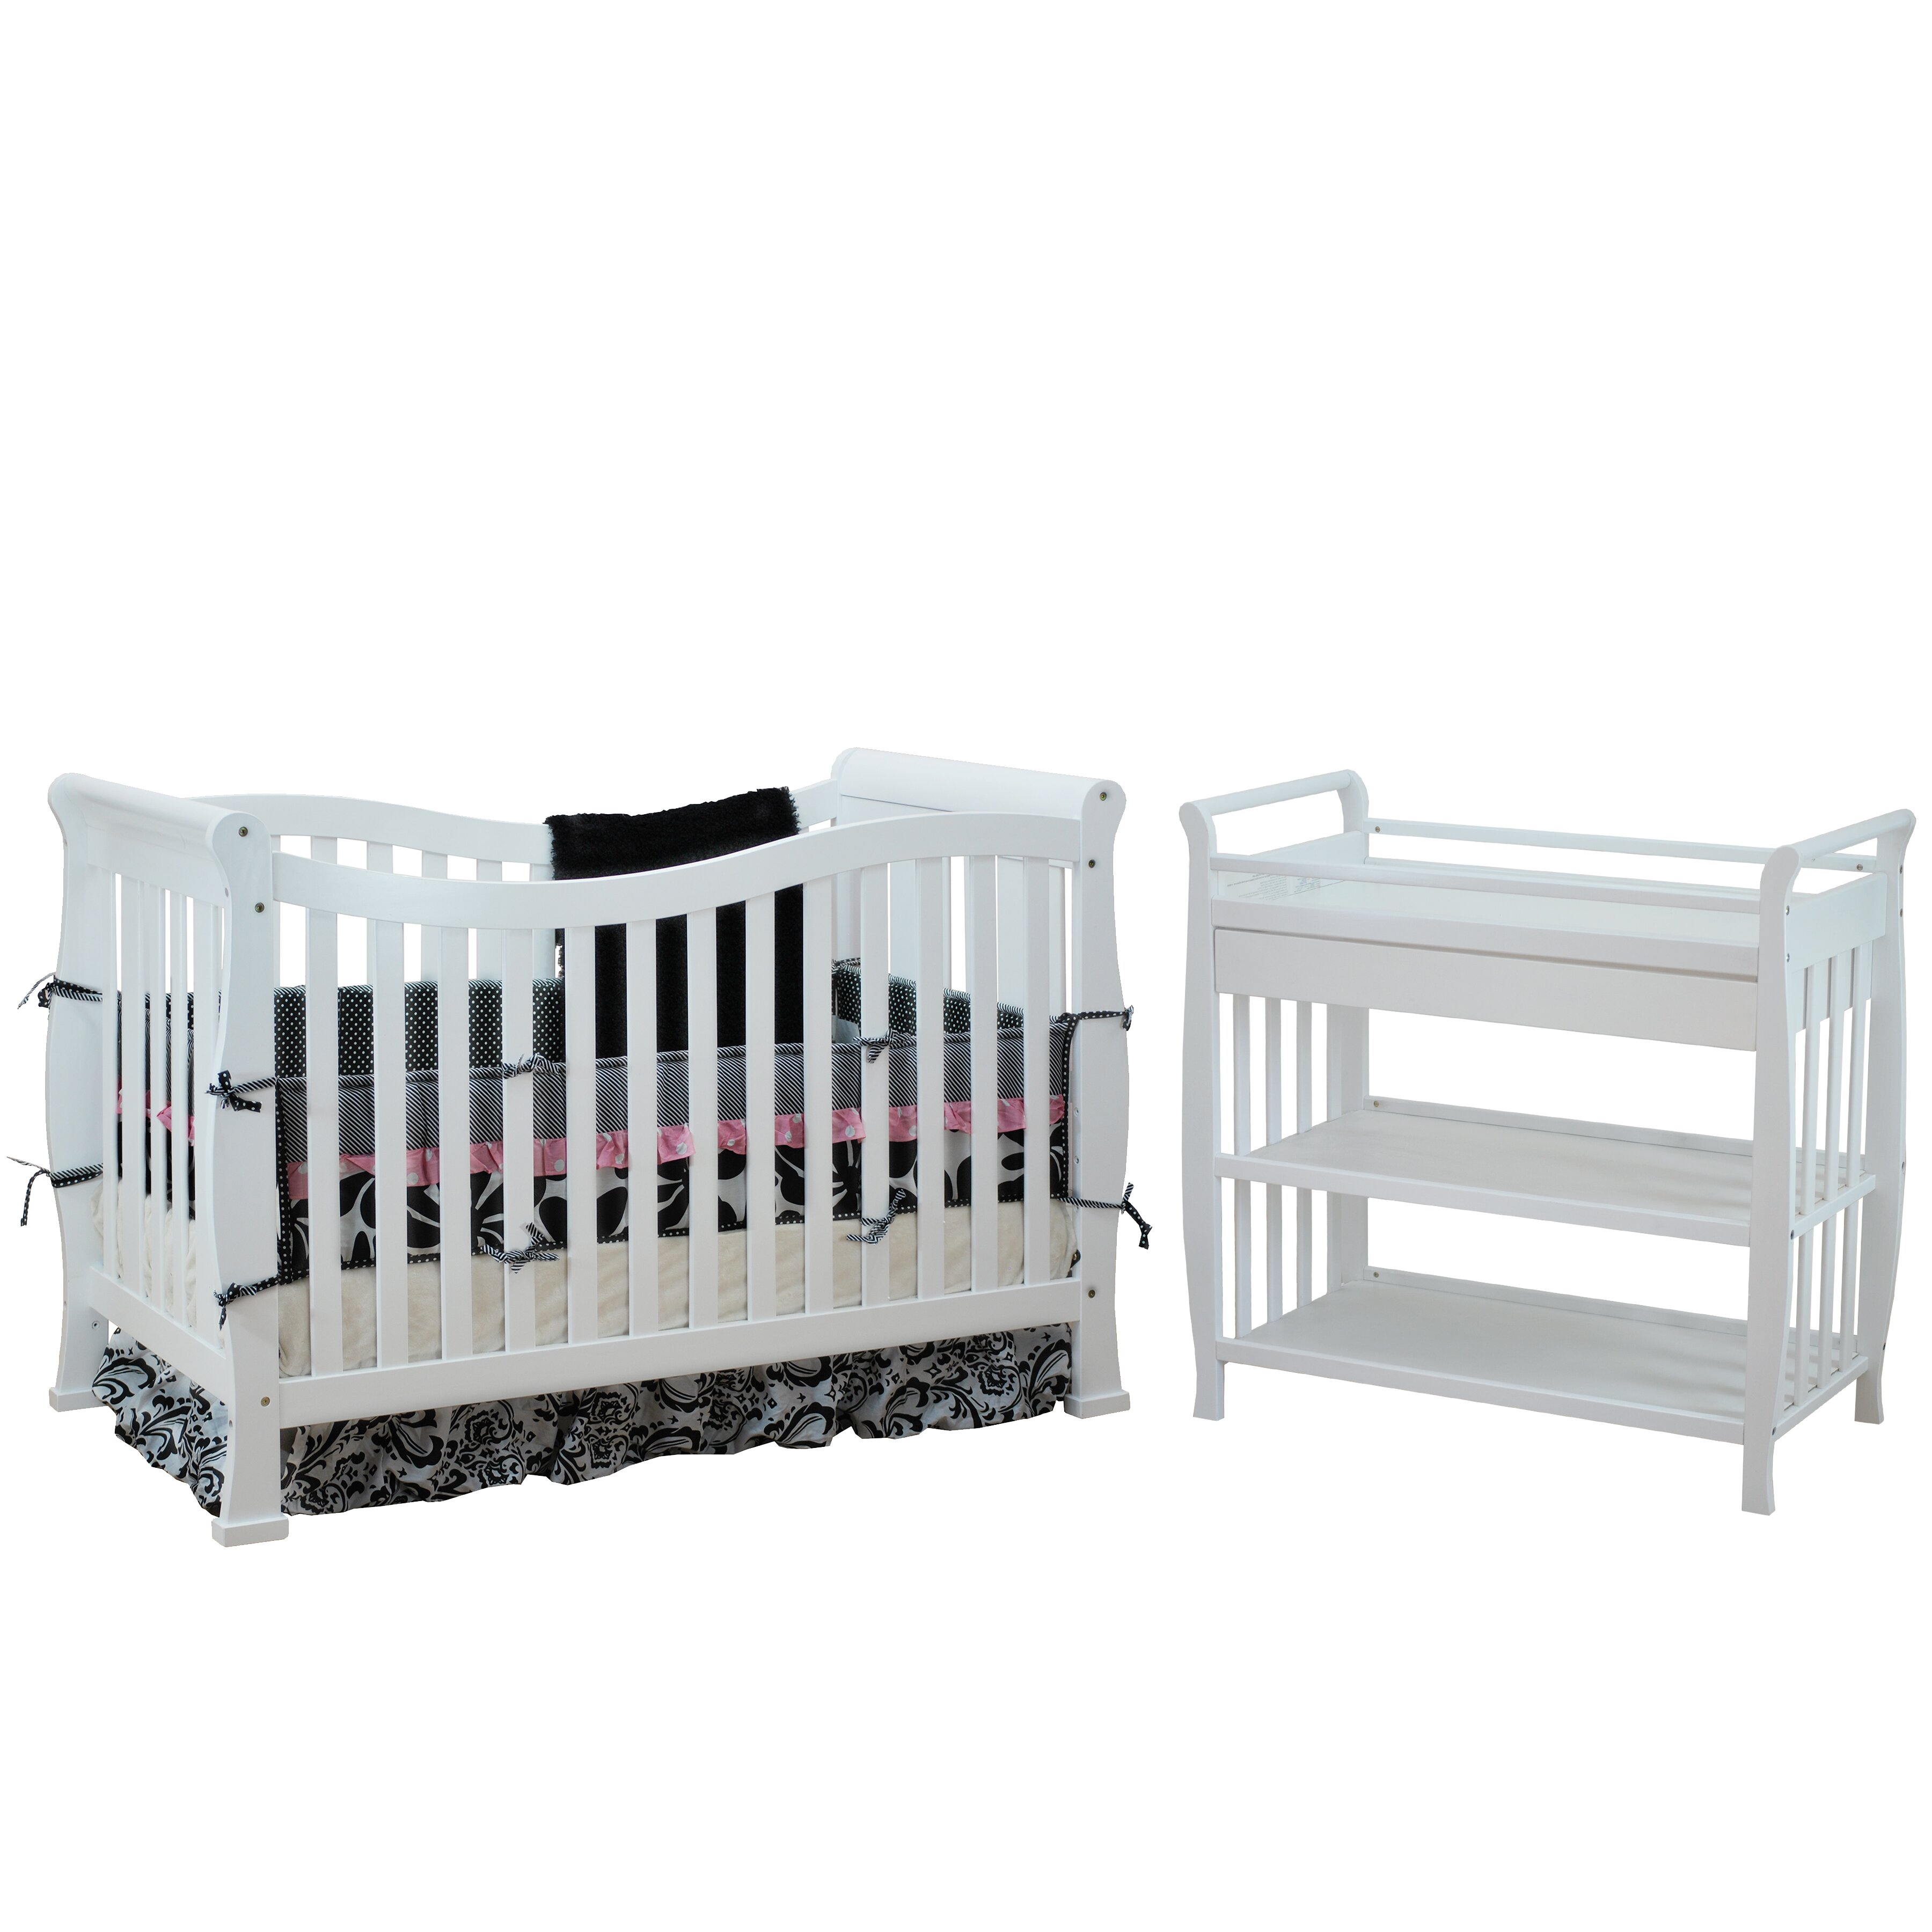 Amish crib for sale - Afg Baby Furniture Nadia Convertible 2 Piece Crib Set